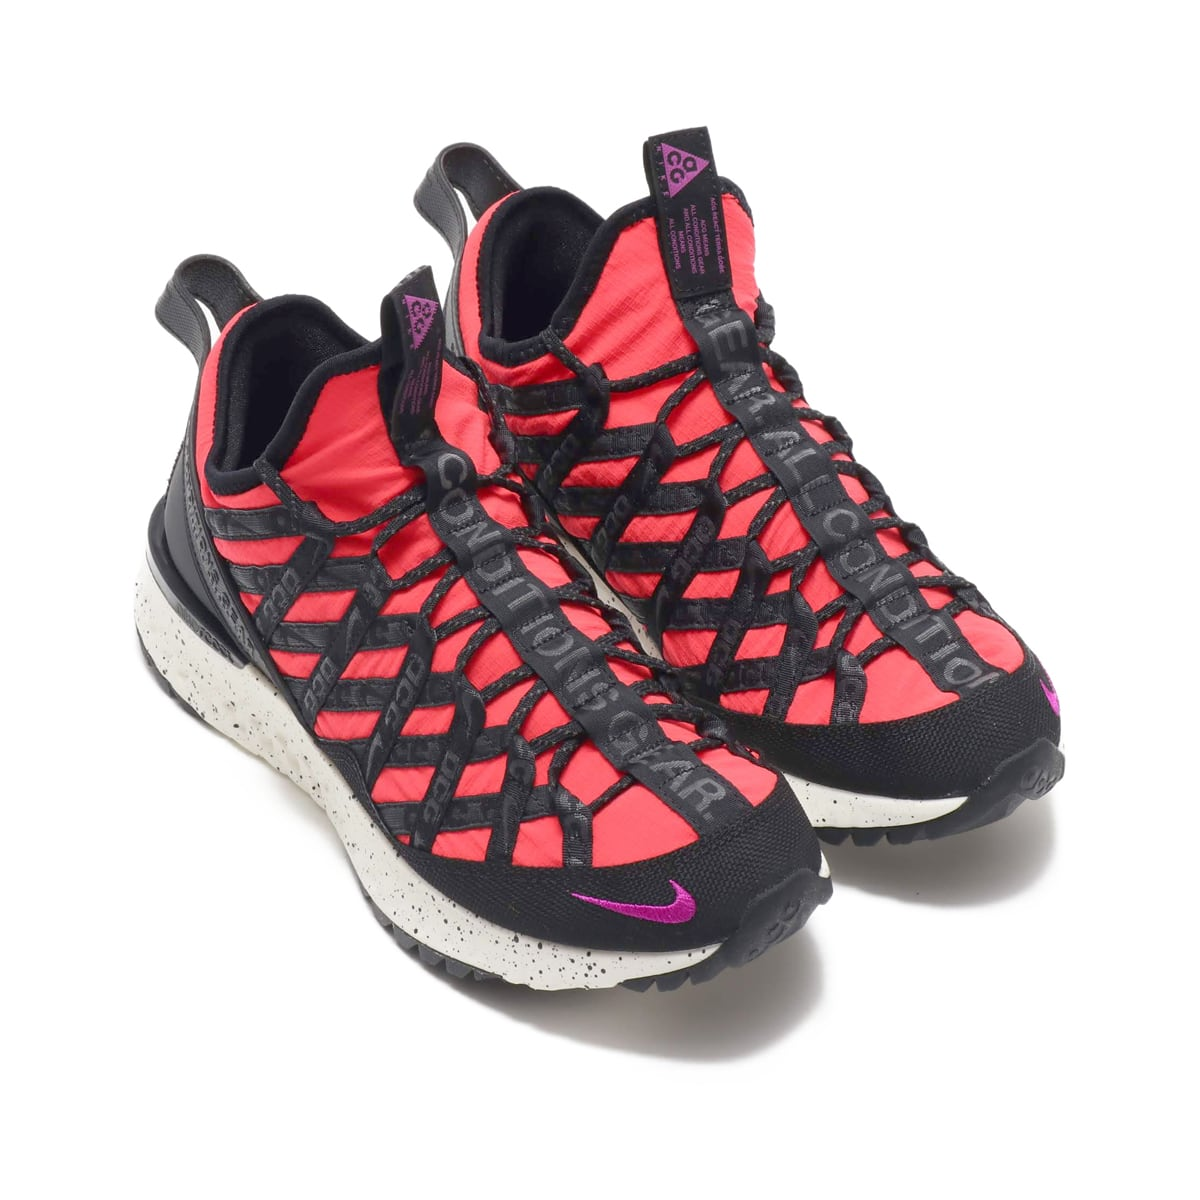 NIKE ACG REACT TERRA GOBE BRIGHT CRIMSON/VIVID PURPLE-SAIL 19FA-S_photo_large